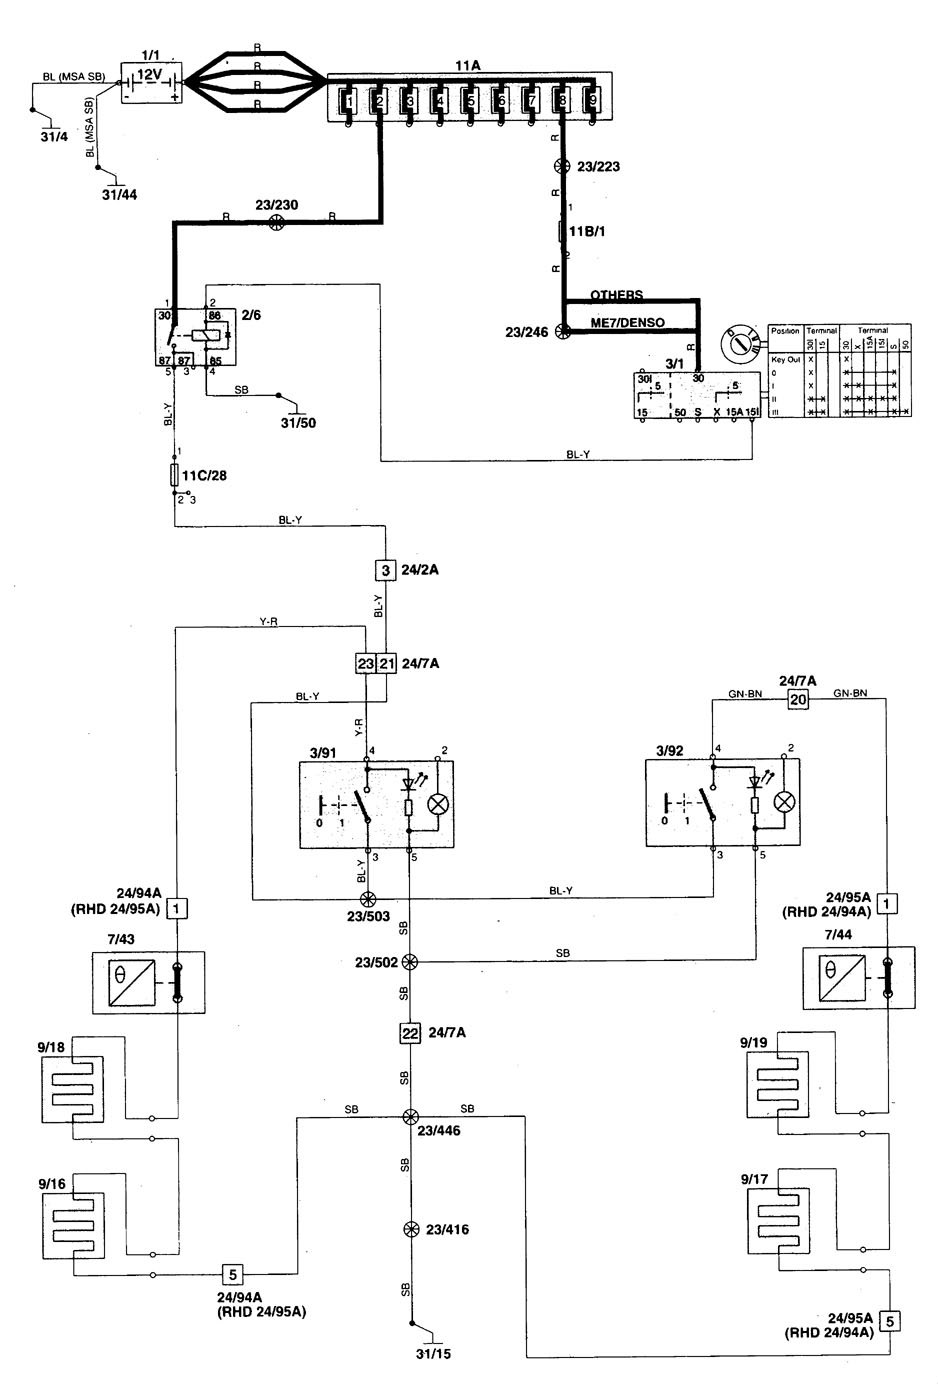 1998 Volvo S70 O2 Sensor Wiring Diagram Great Installation Of Ac V70 Engine Todays Rh 16 6 9 1813weddingbarn Com Maf